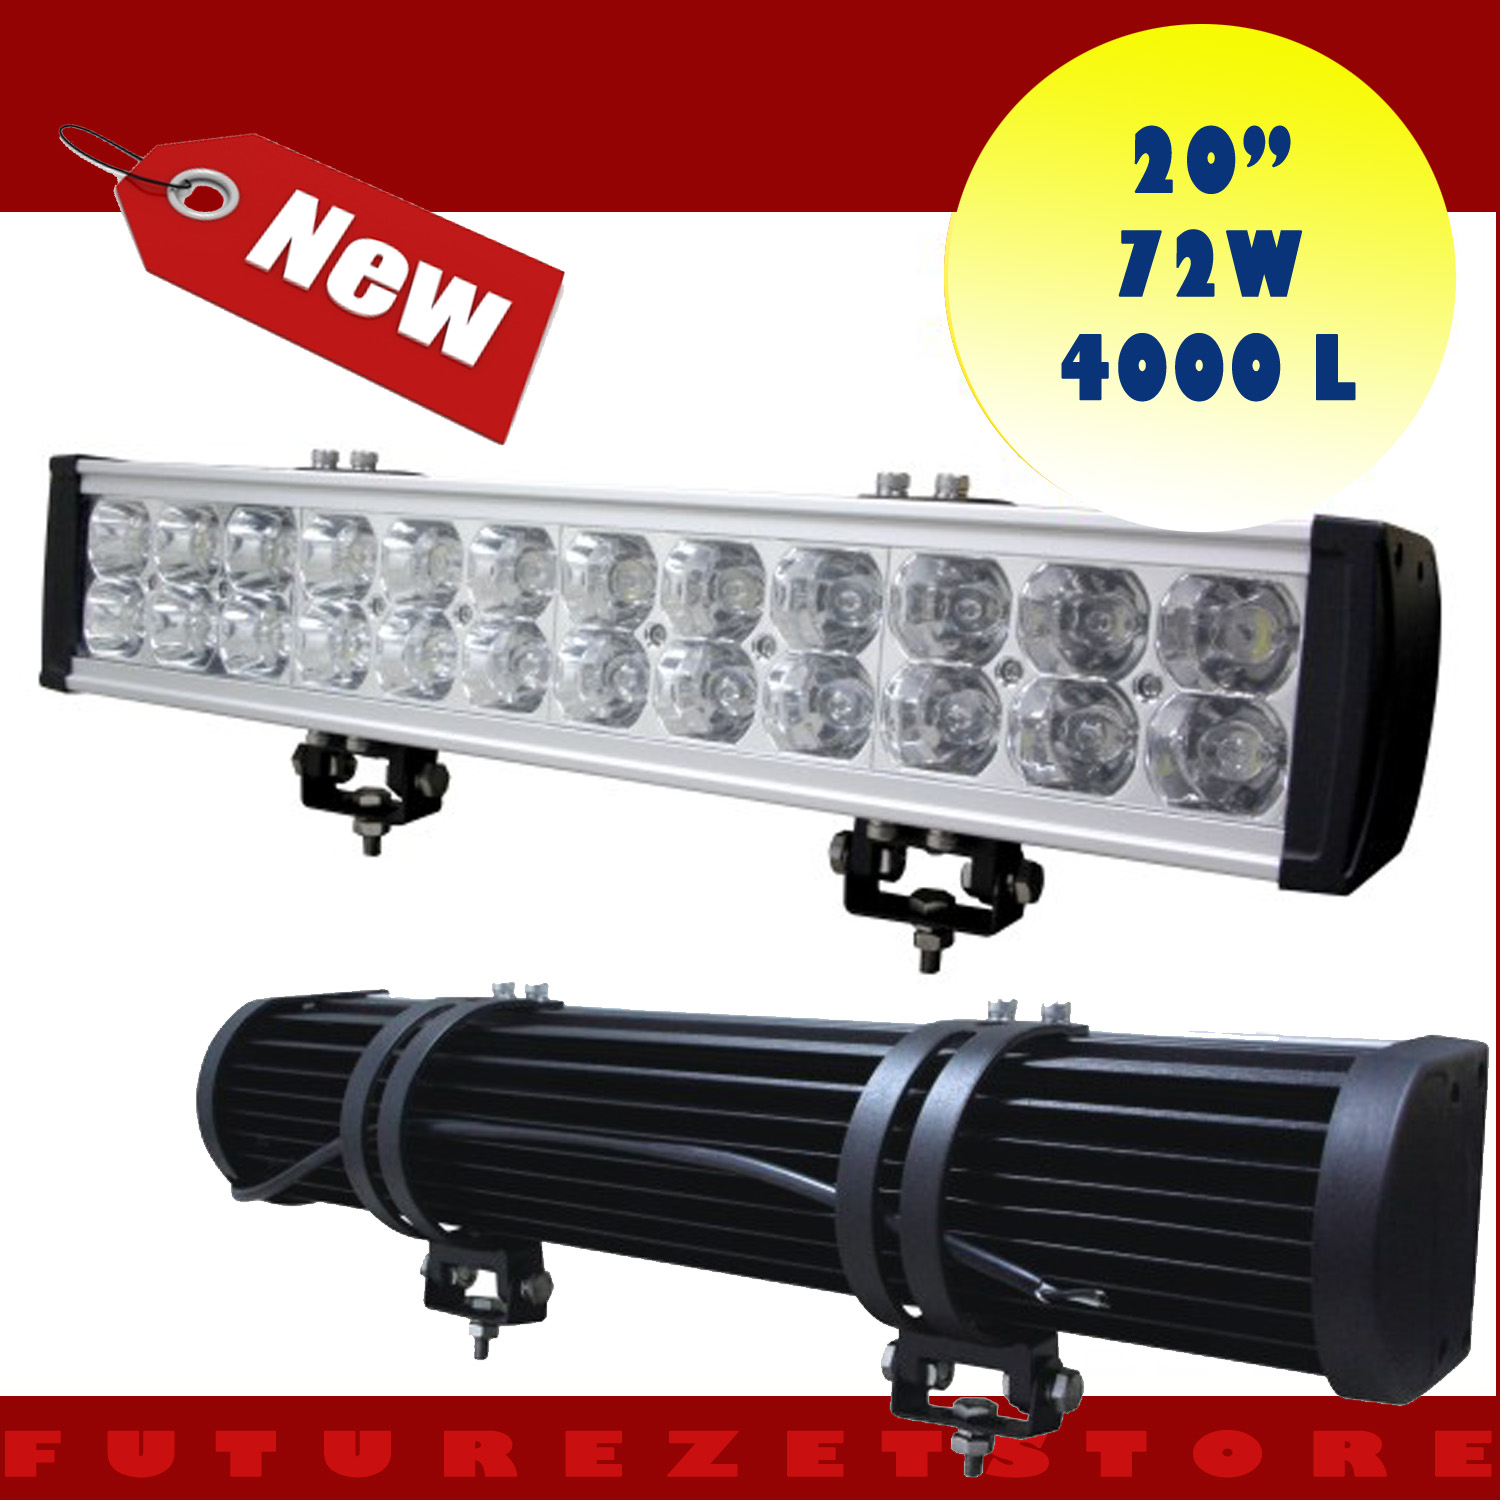 High Power 200w 20 Inch Jeep Accessories Led Light Bar For: 20 Inch 72W 4000 Lumen Led Light Bar OFFROAD JEEP ATV Boat